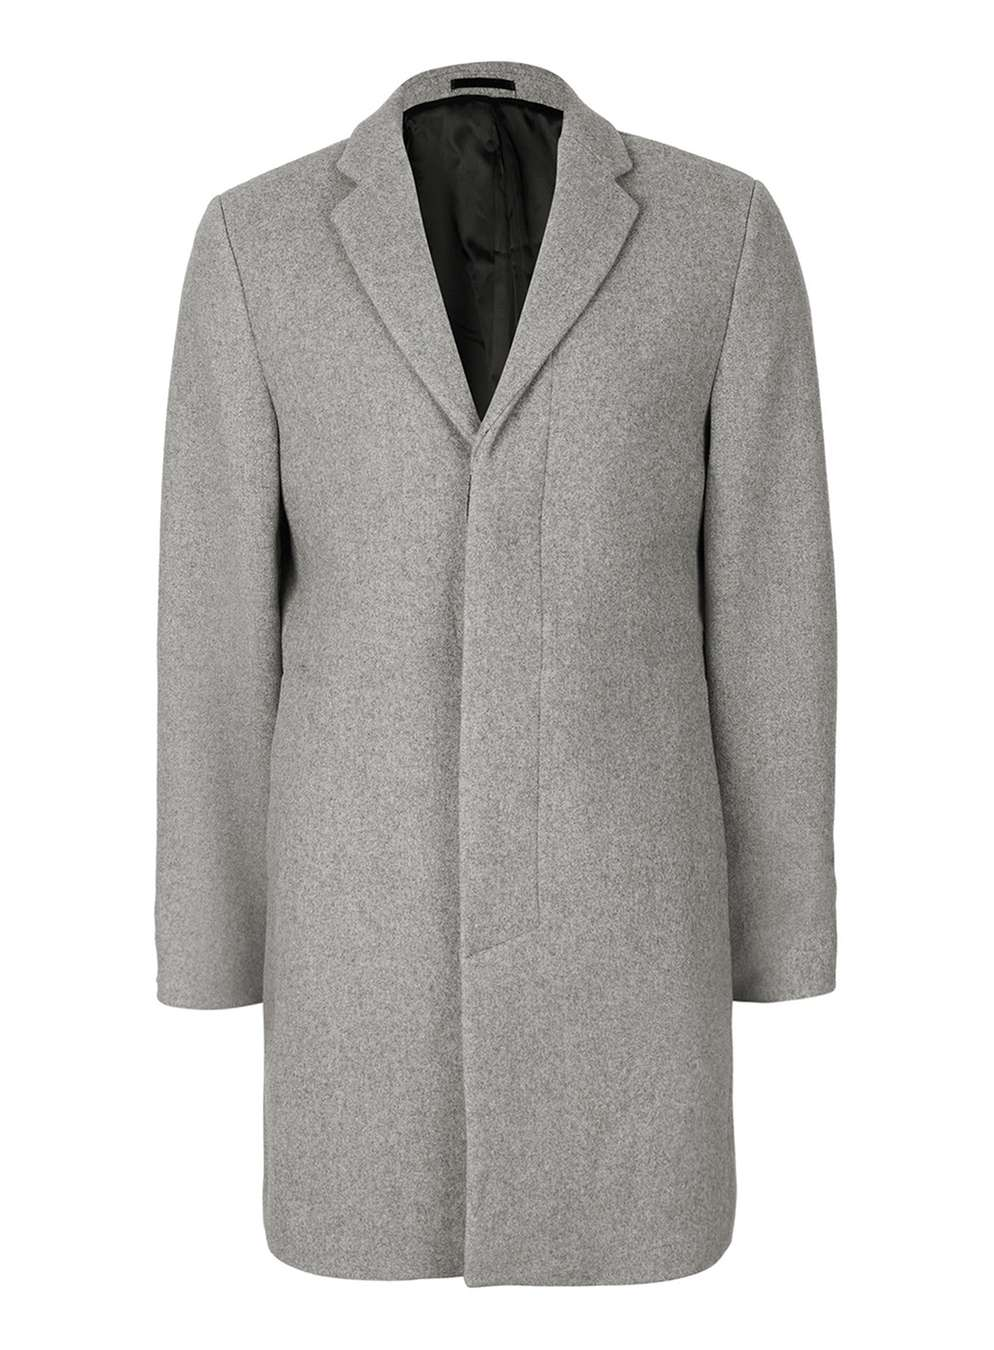 SELECTED HOMME Grey Wool Blend Coat, £200 ( topman.com )